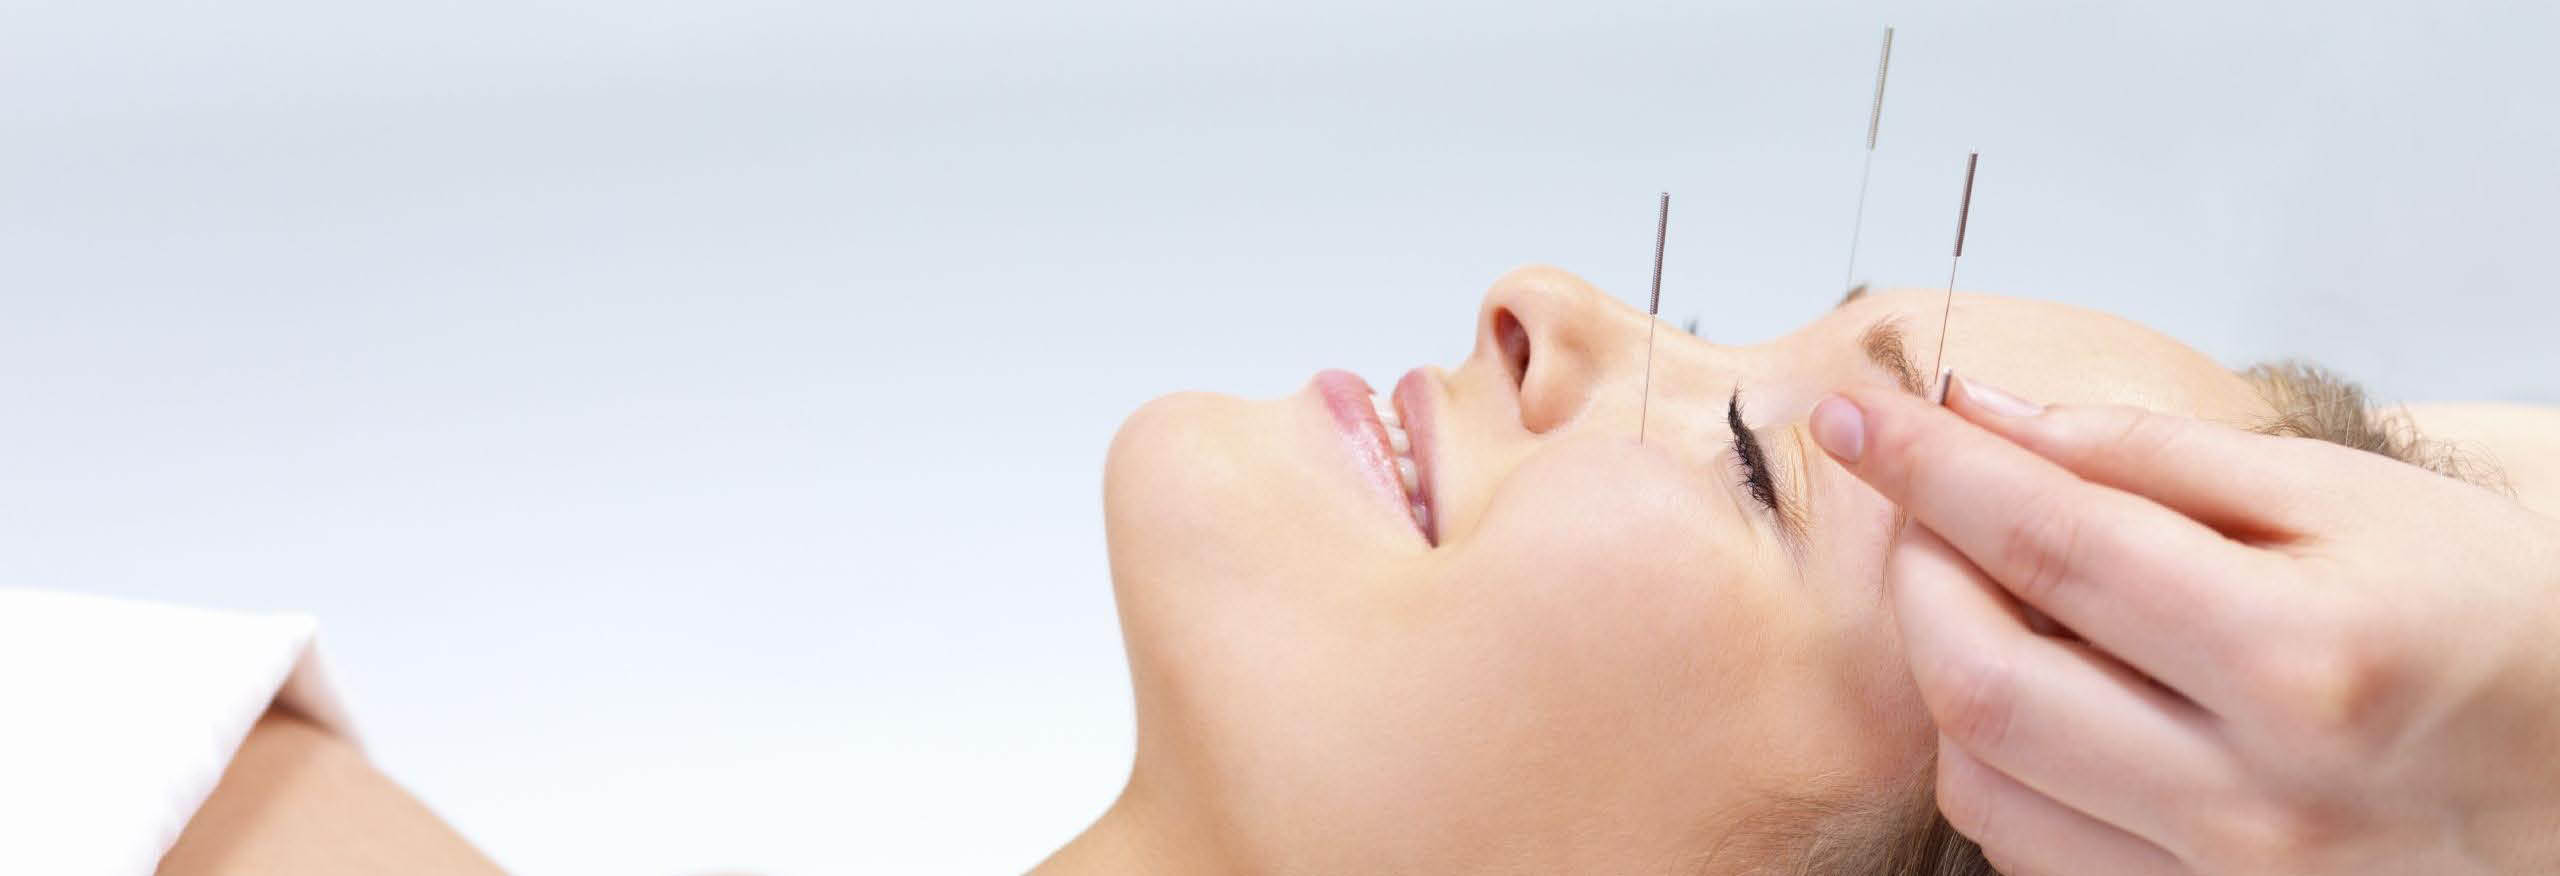 Arlington Seattle Acupuncture Massage Herb Cupping Wellness